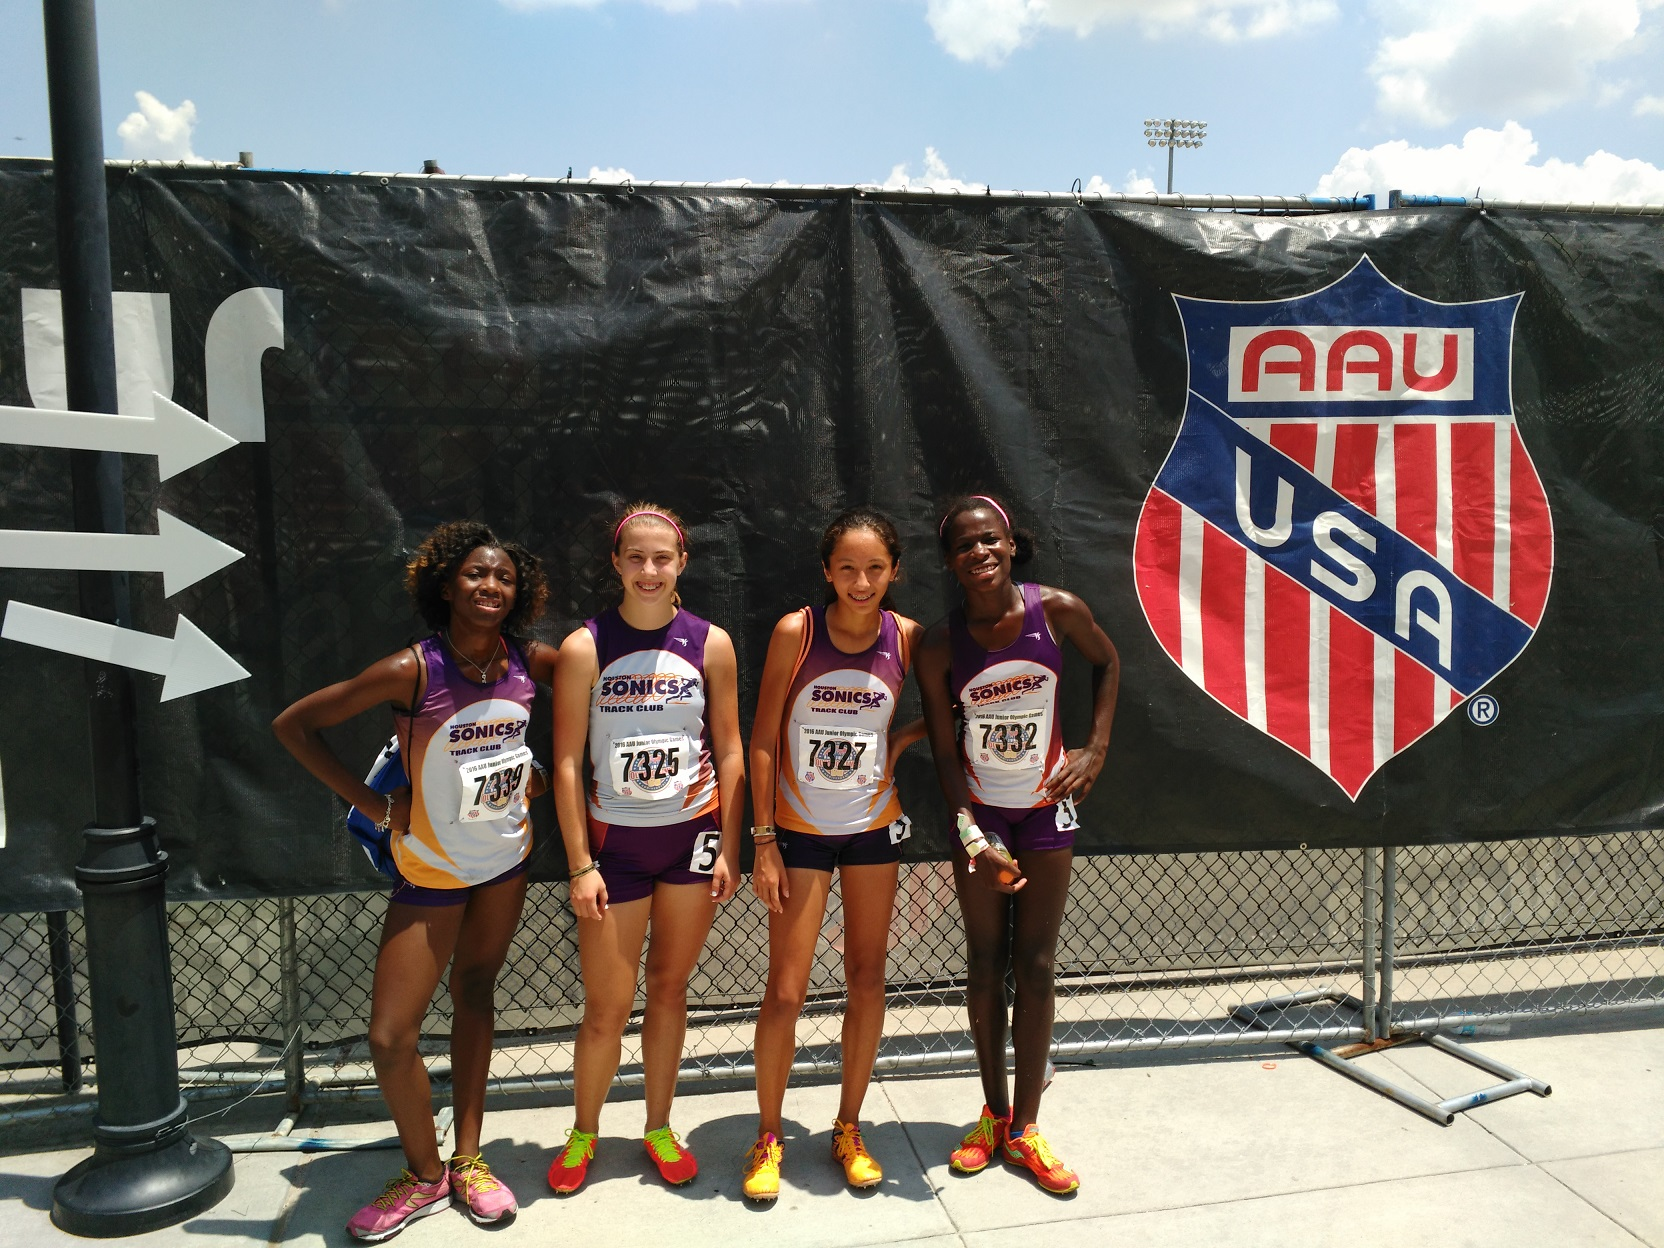 13-14 Girls 4x400 relay team